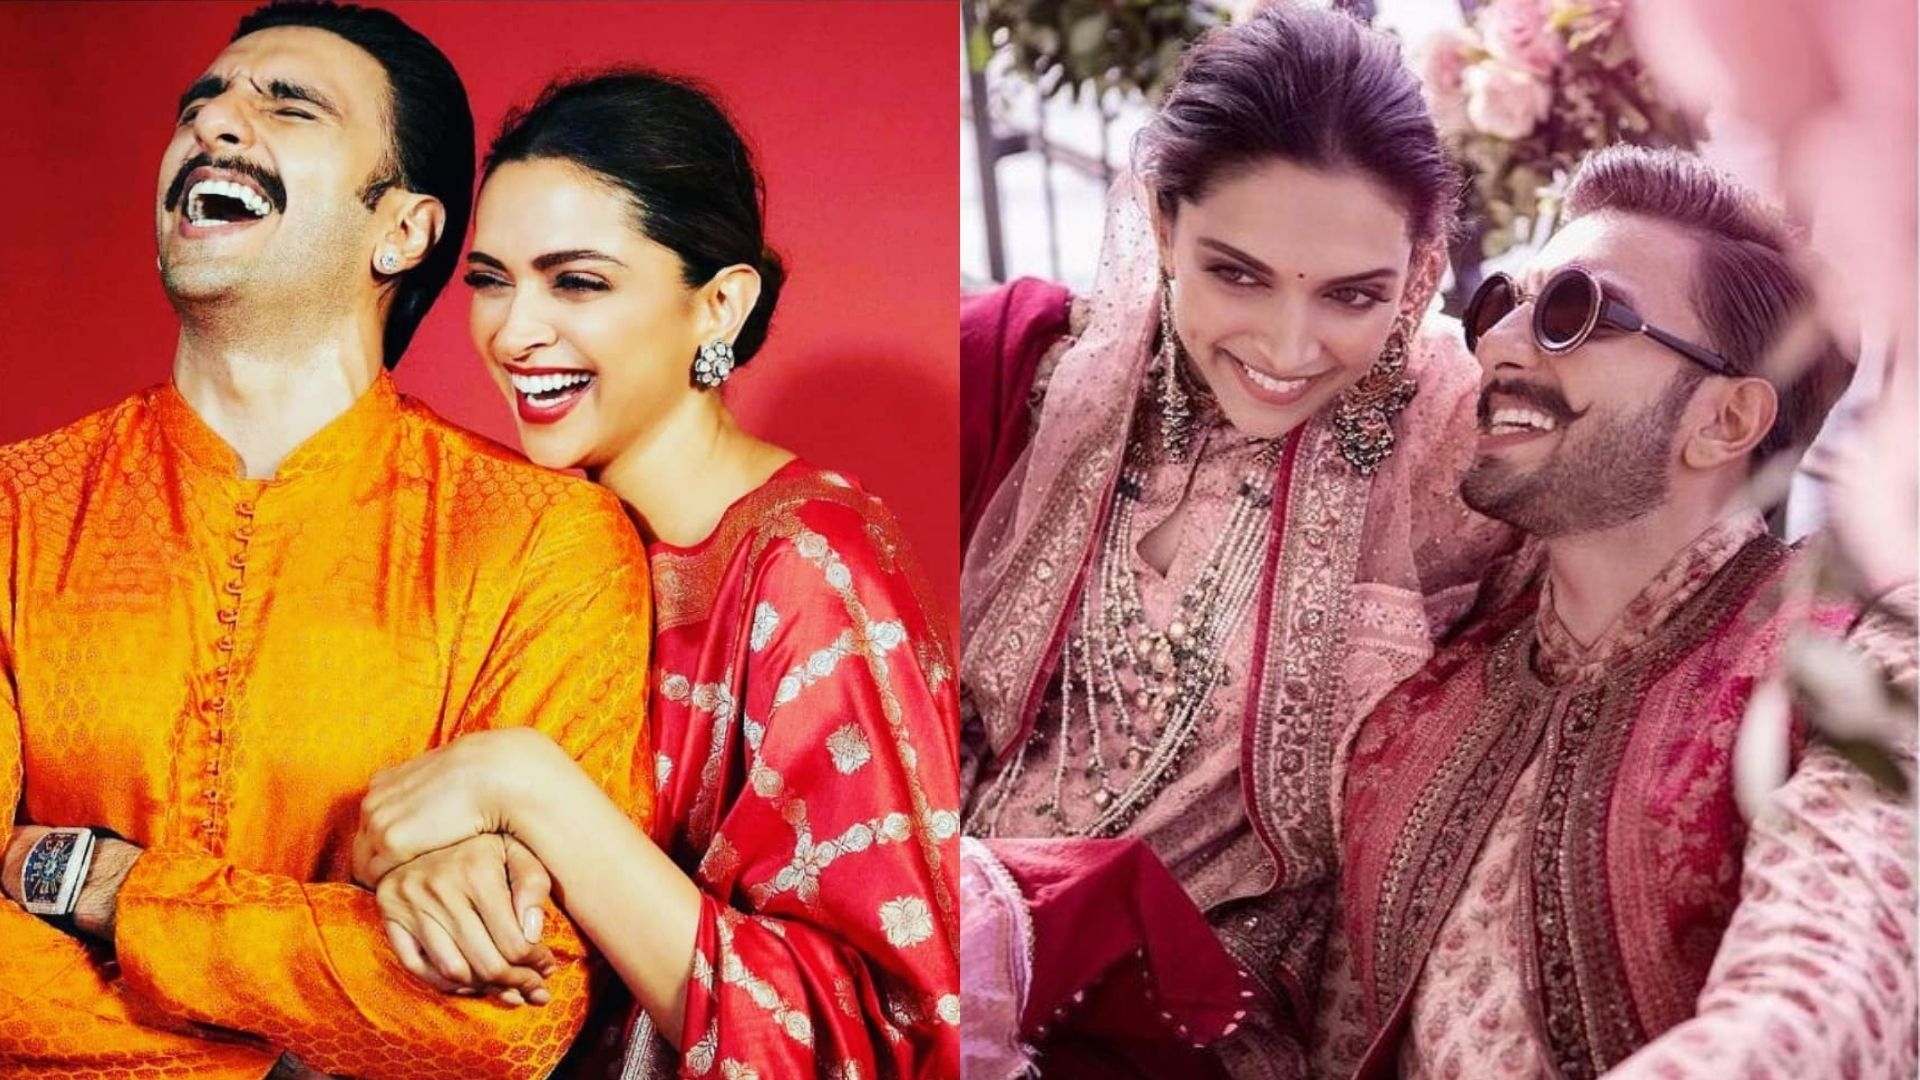 Karwa Chauth 2021: Is Ranveer Singh set to observe the auspicious day for wifey Deepika Padukone? We think so